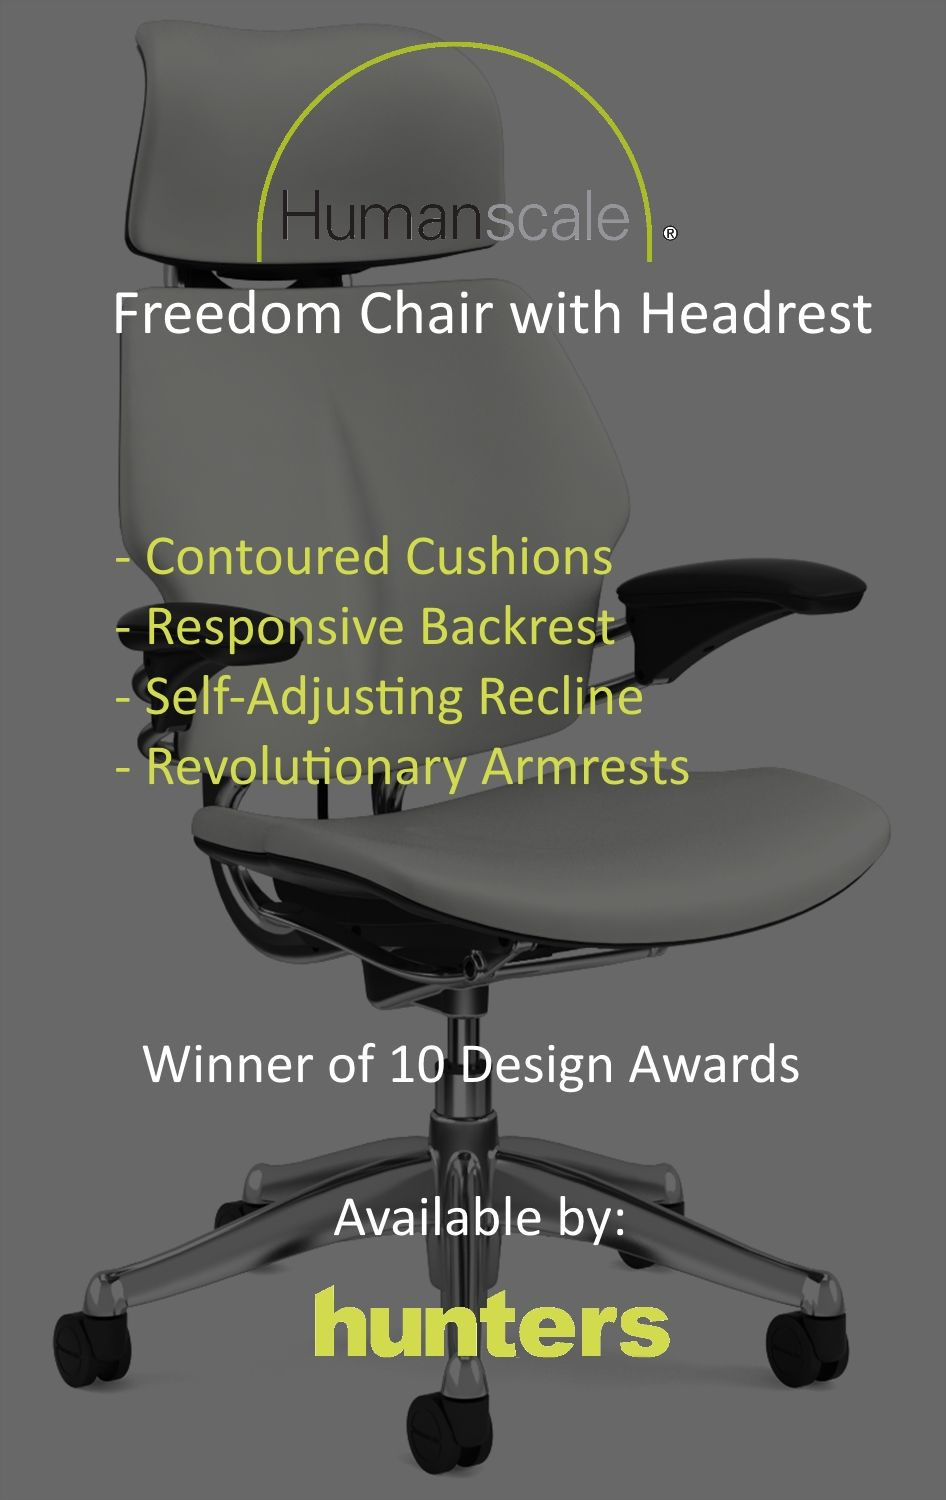 Find The Humanscale Freedom Chair With Headrest On Our Website At